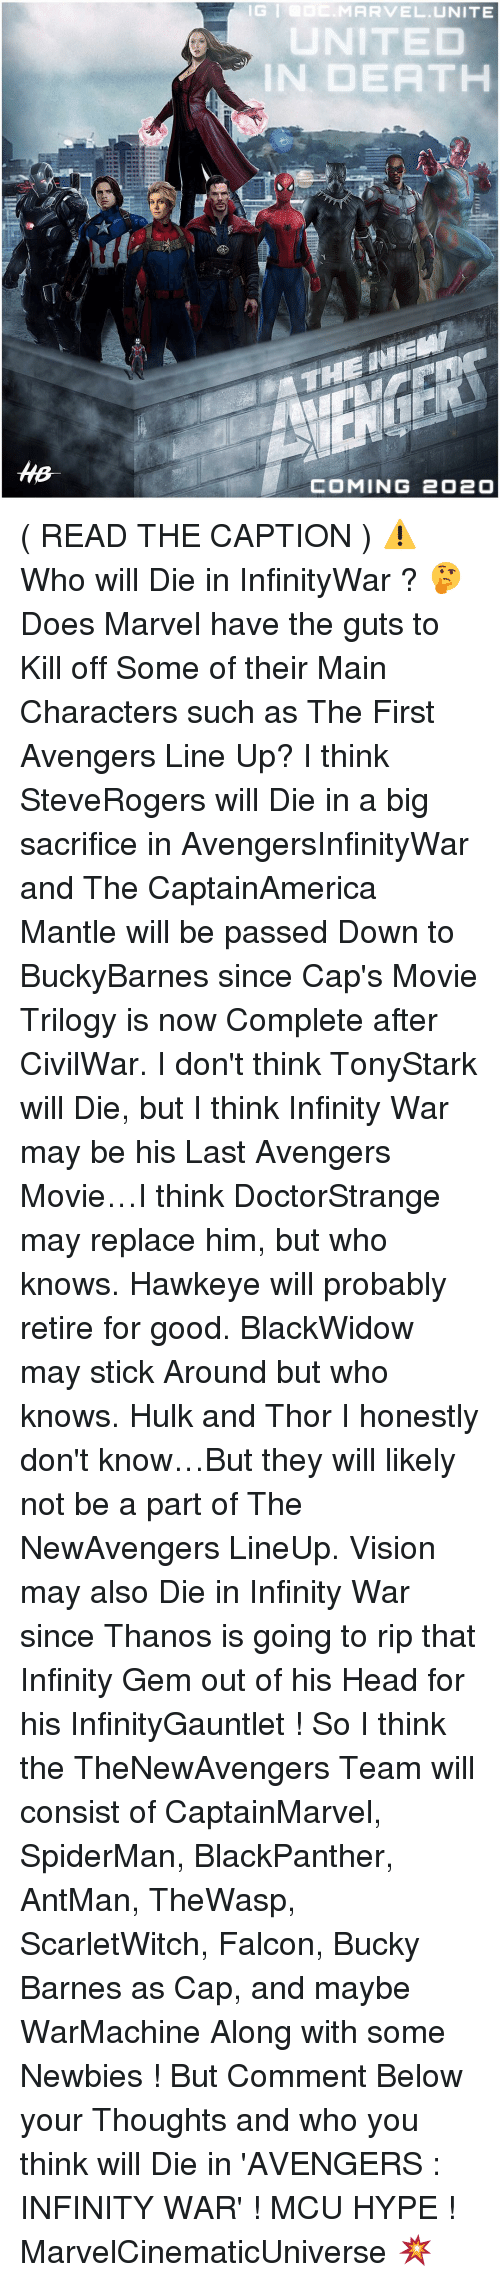 Infiniti: MARVEL UNITE  IN DEATH  THE MEM  COMING 2O2O ( READ THE CAPTION ) ⚠️ Who will Die in InfinityWar ? 🤔 Does Marvel have the guts to Kill off Some of their Main Characters such as The First Avengers Line Up? I think SteveRogers will Die in a big sacrifice in AvengersInfinityWar and The CaptainAmerica Mantle will be passed Down to BuckyBarnes since Cap's Movie Trilogy is now Complete after CivilWar. I don't think TonyStark will Die, but I think Infinity War may be his Last Avengers Movie…I think DoctorStrange may replace him, but who knows. Hawkeye will probably retire for good. BlackWidow may stick Around but who knows. Hulk and Thor I honestly don't know…But they will likely not be a part of The NewAvengers LineUp. Vision may also Die in Infinity War since Thanos is going to rip that Infinity Gem out of his Head for his InfinityGauntlet ! So I think the TheNewAvengers Team will consist of CaptainMarvel, SpiderMan, BlackPanther, AntMan, TheWasp, ScarletWitch, Falcon, Bucky Barnes as Cap, and maybe WarMachine Along with some Newbies ! But Comment Below your Thoughts and who you think will Die in 'AVENGERS : INFINITY WAR' ! MCU HYPE ! MarvelCinematicUniverse 💥